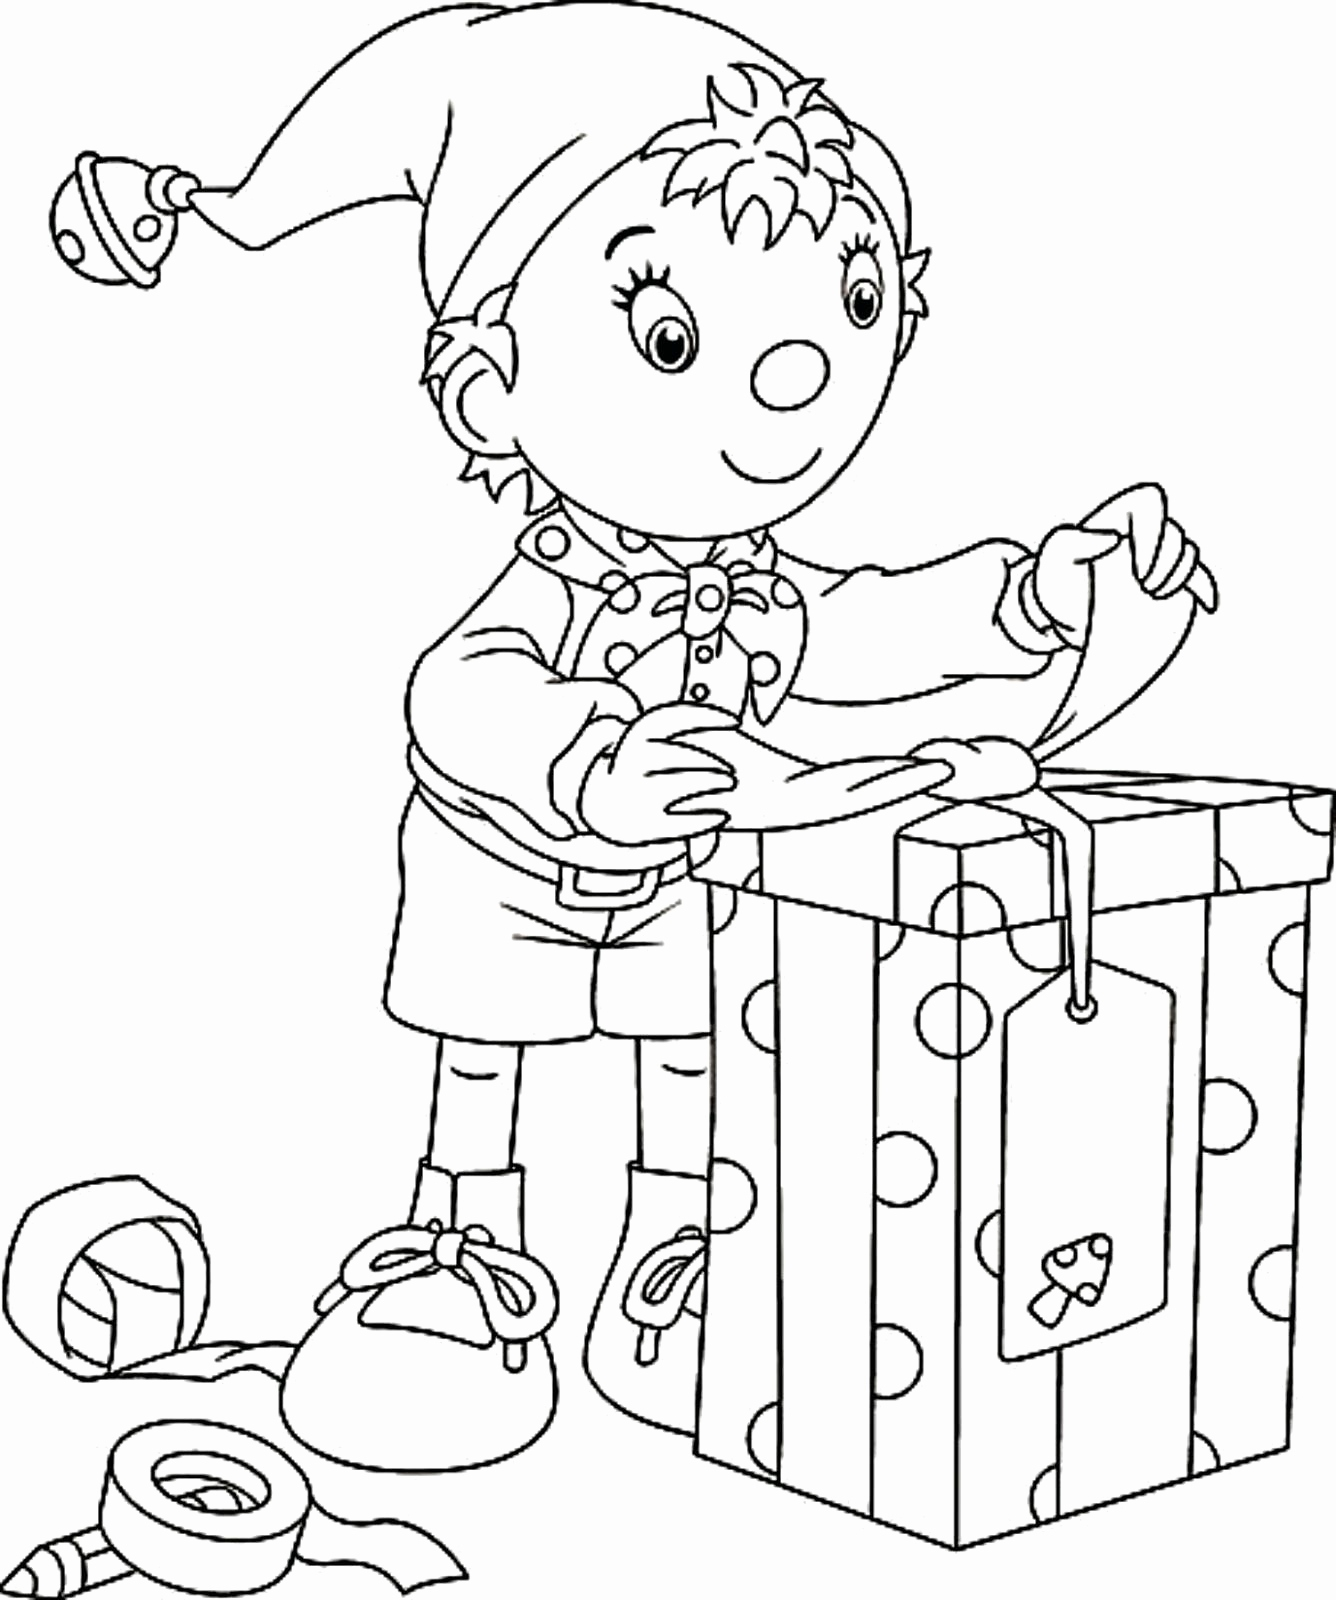 elf coloring sheet elf coloring pages images coloringmecom coloring elf sheet